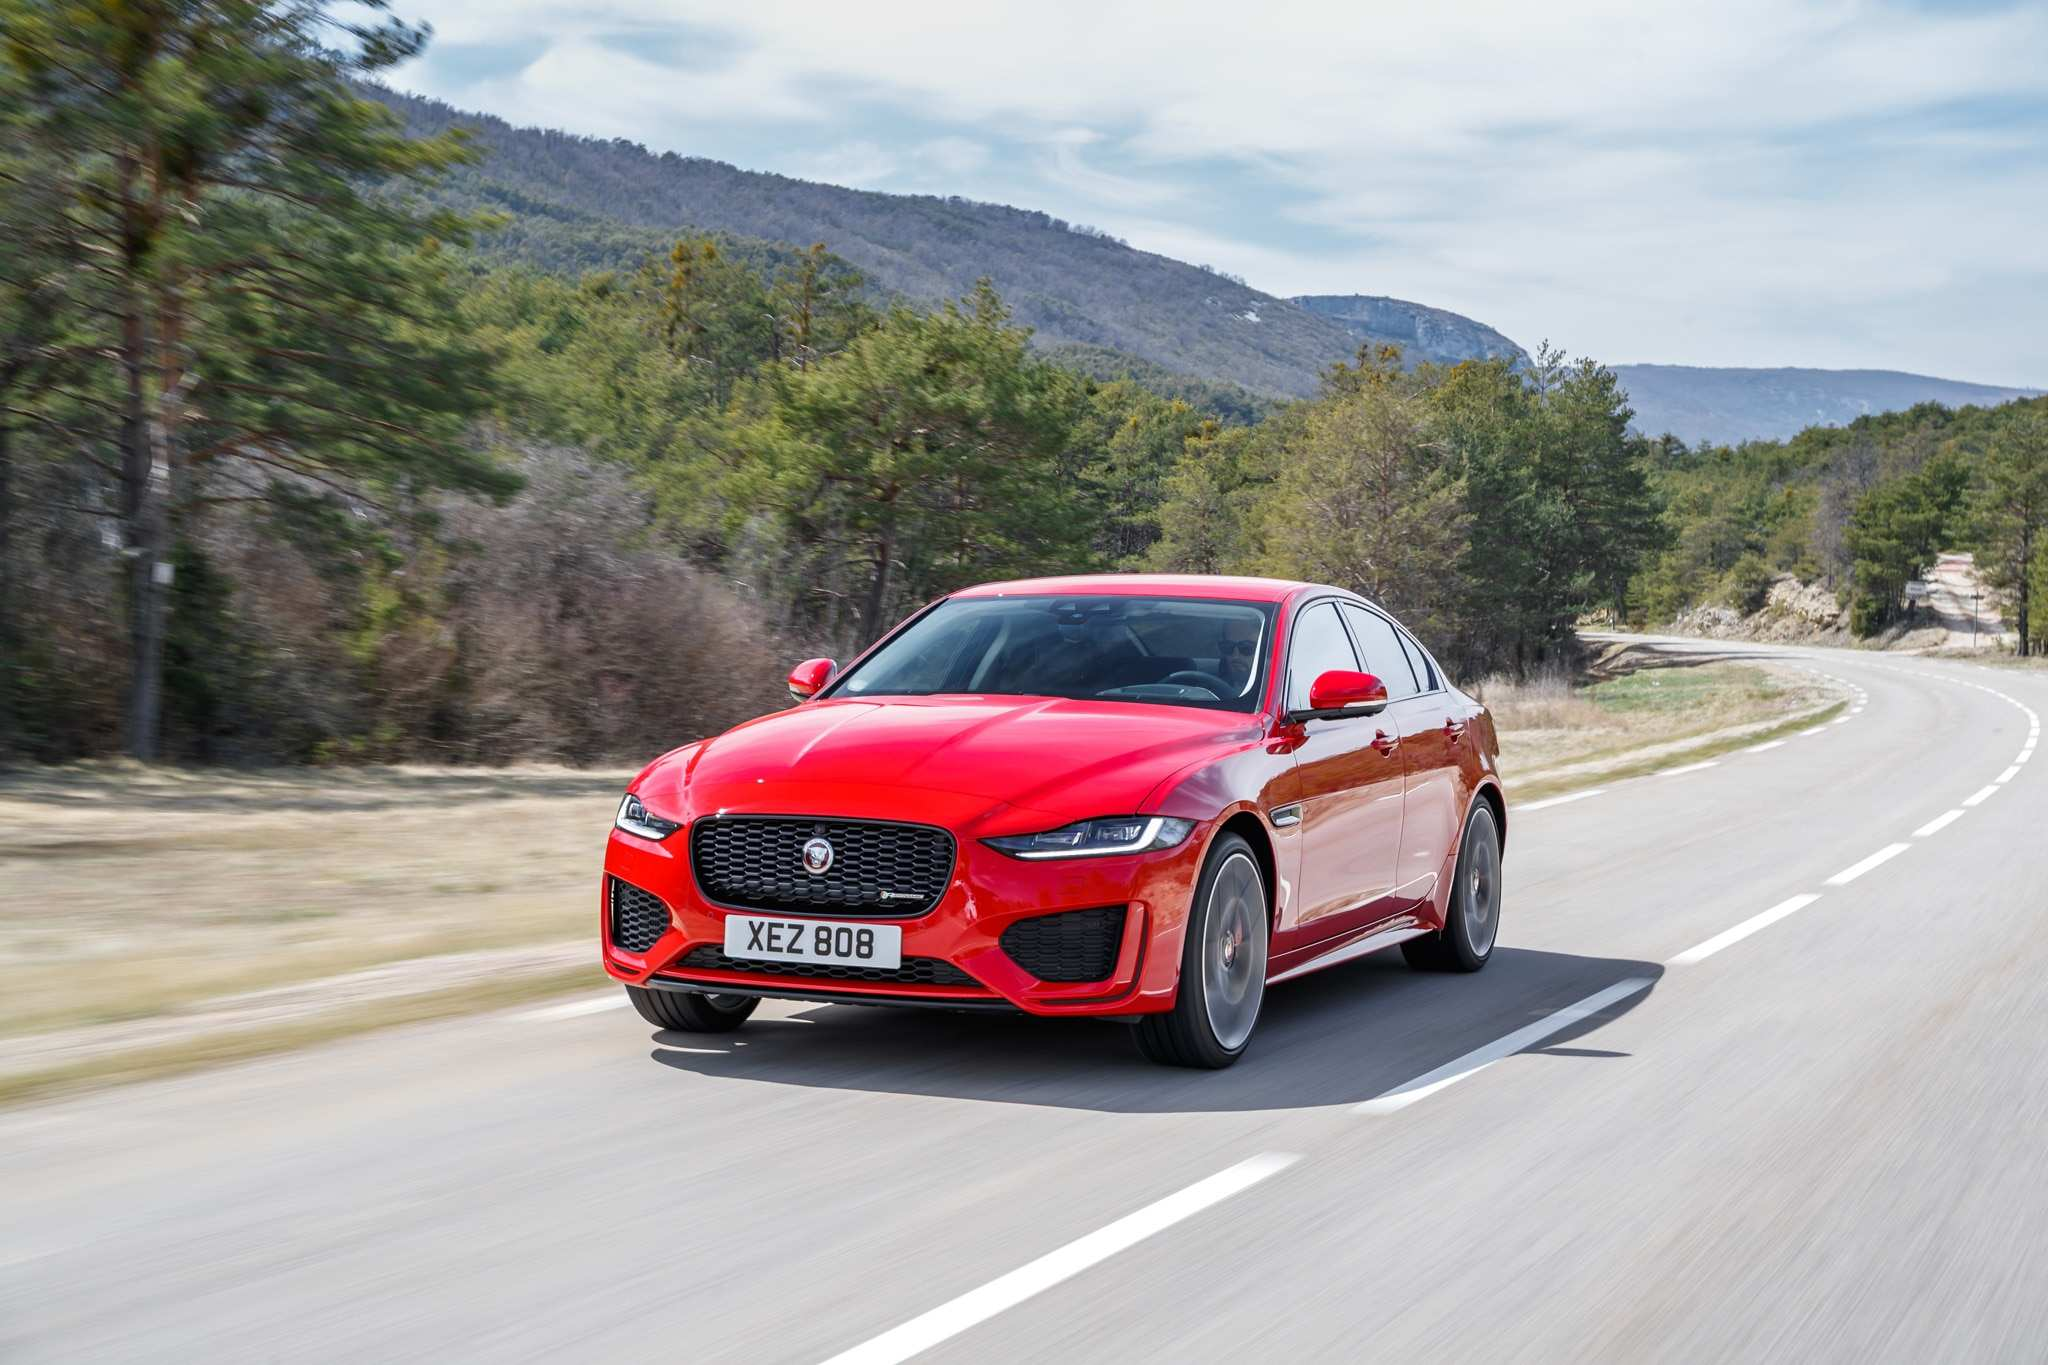 47 Concept of Jaguar Xe May 2020 Spesification by Jaguar Xe May 2020